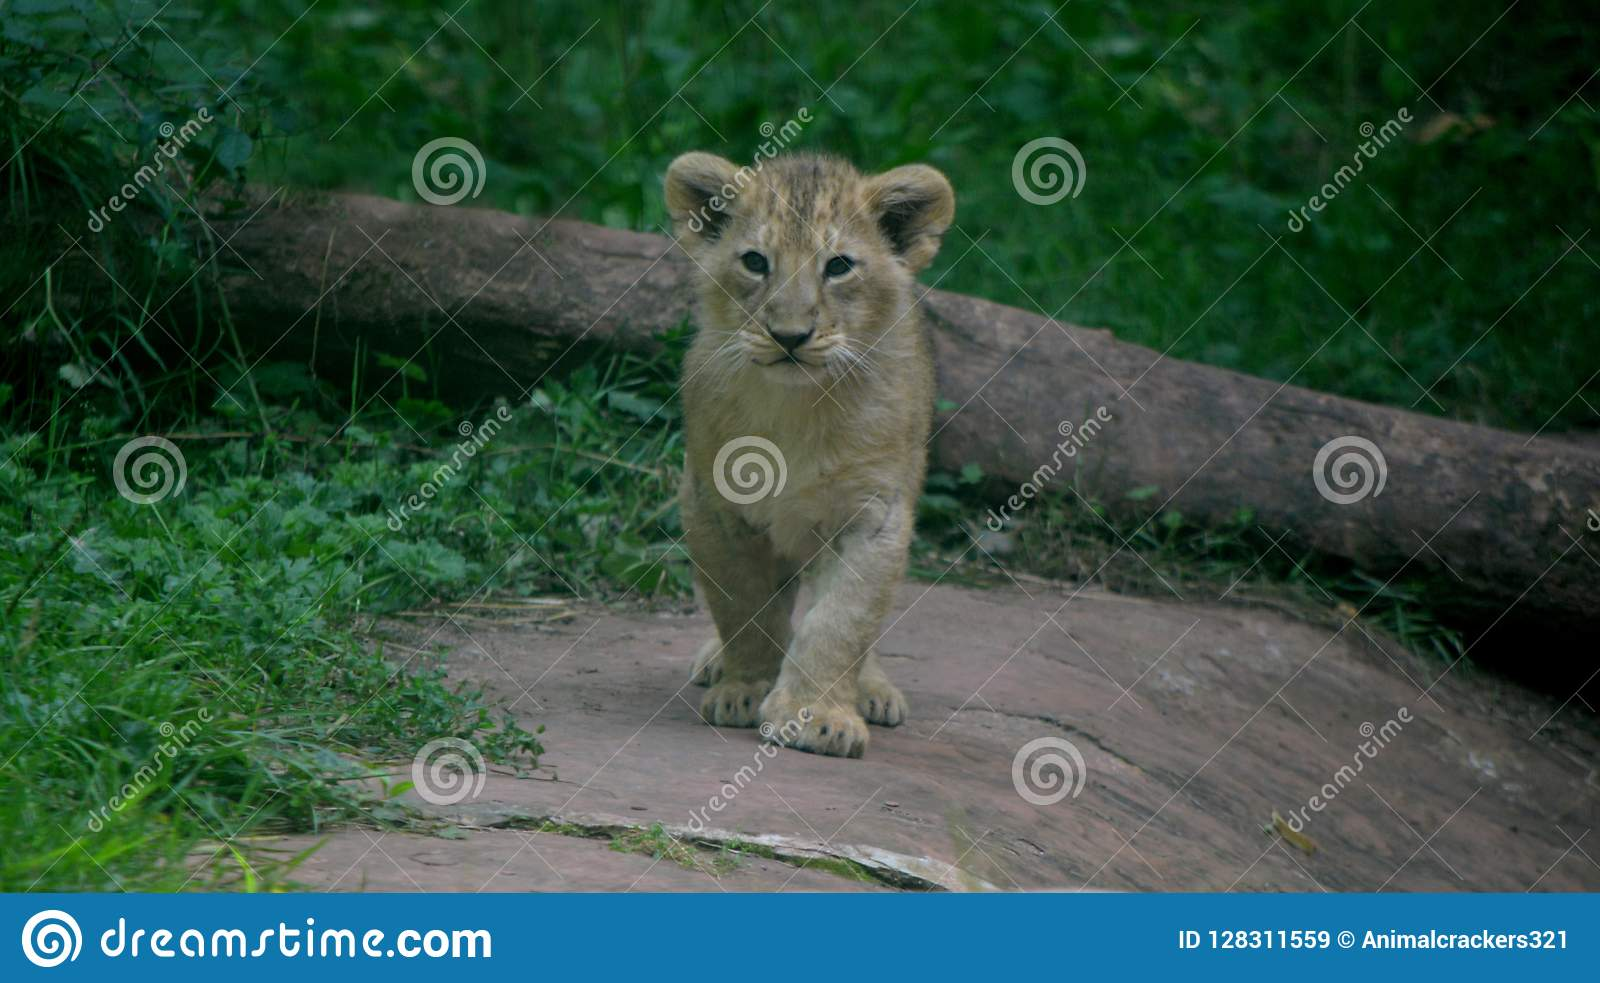 Lion cub from Paignton Zoo.